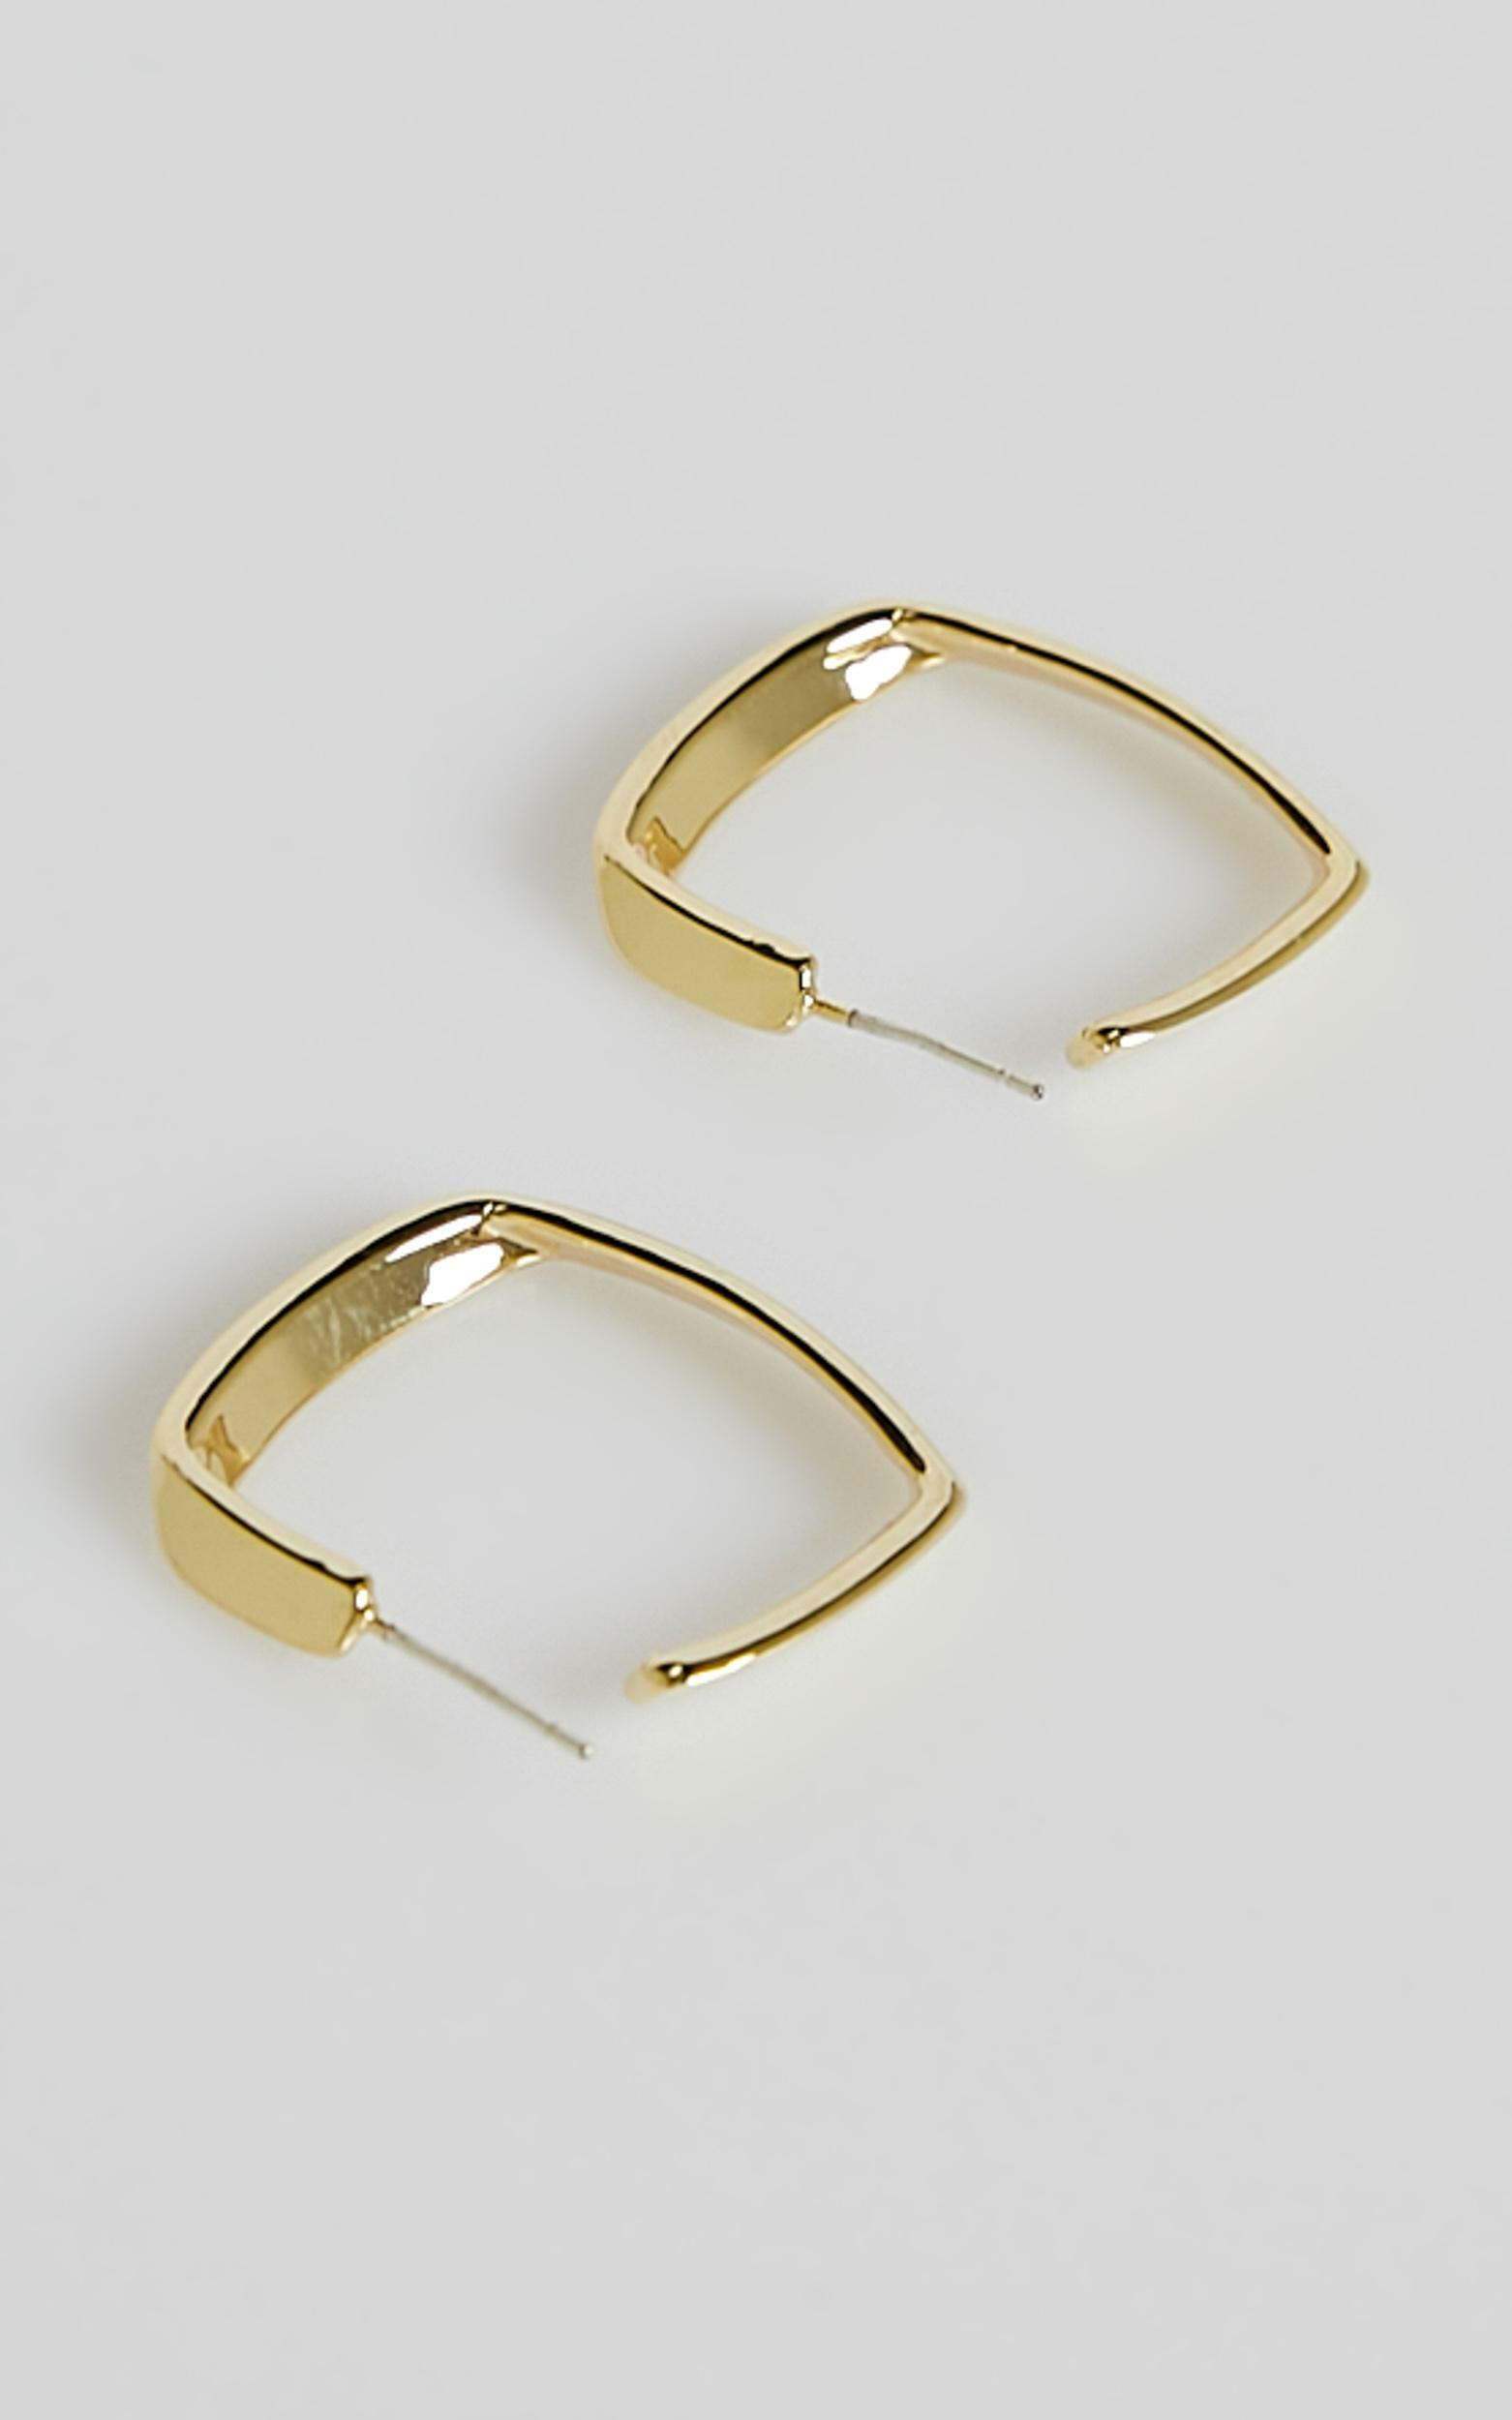 Mumfi Hoop Earrings in Gold, , hi-res image number null